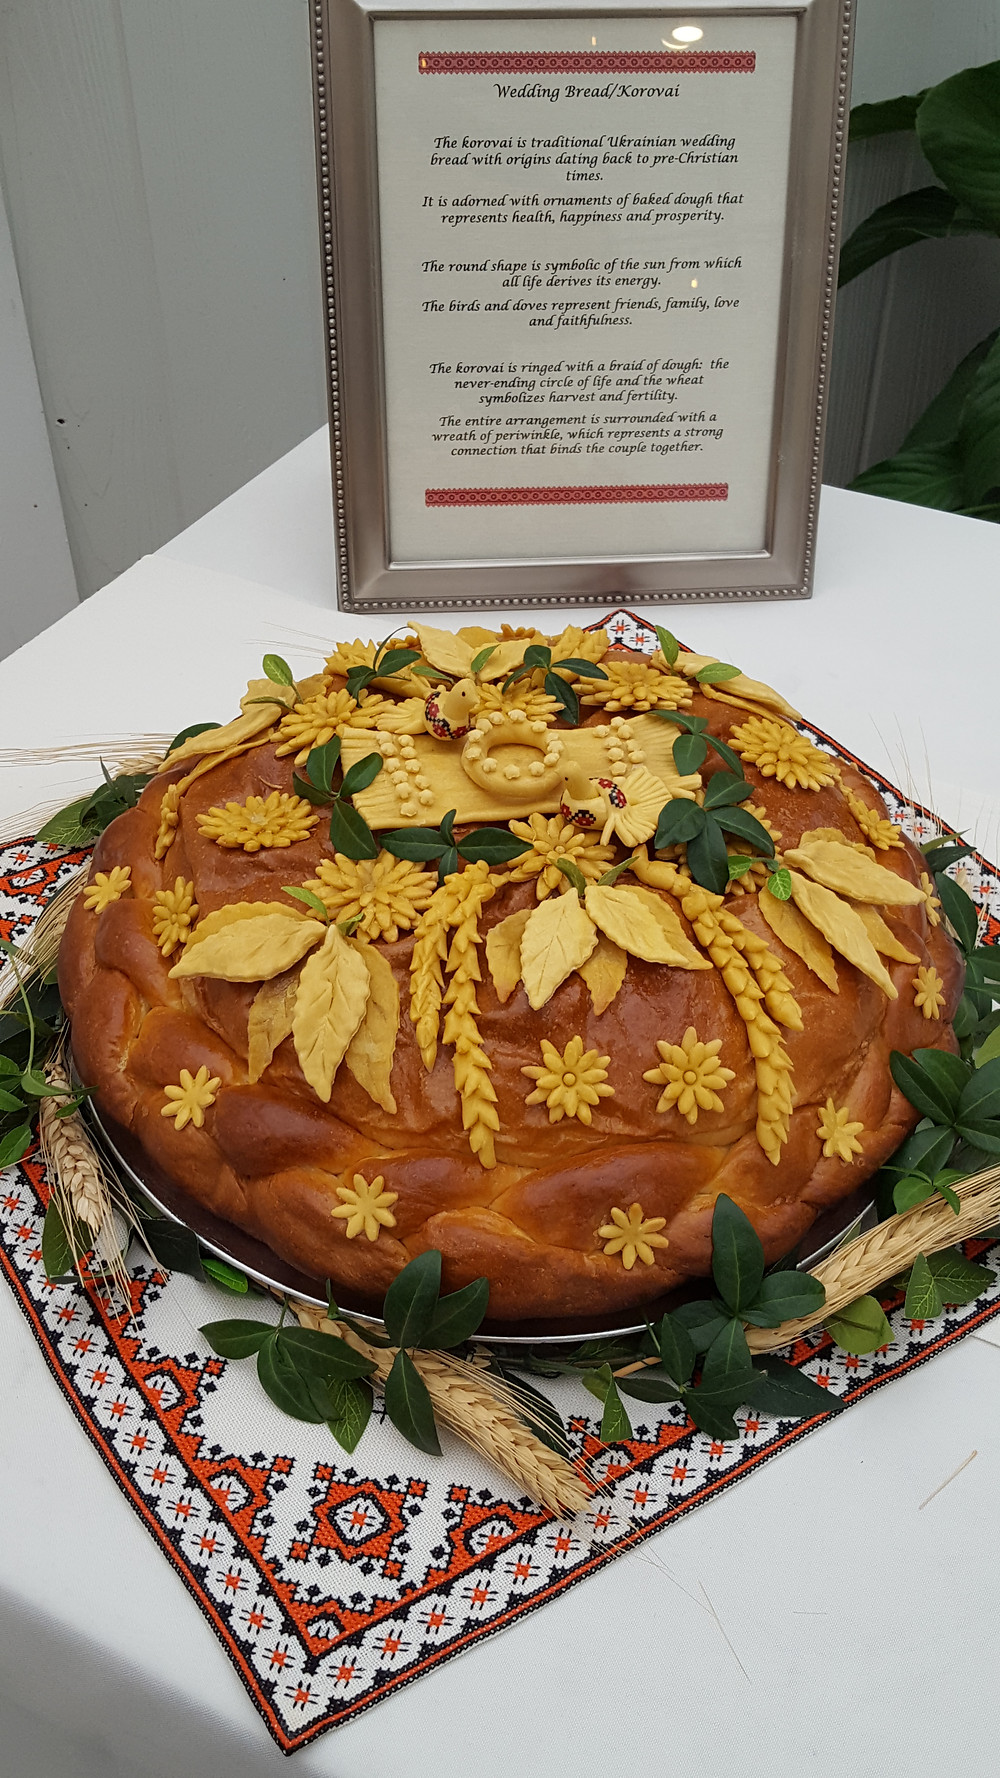 Korovai, is a traditional Ukrainian  wedding bread. Wedding at Goldner Walsh Gardens.  Music by Rondo String Quartet.  www.RondoStringQuartet.com